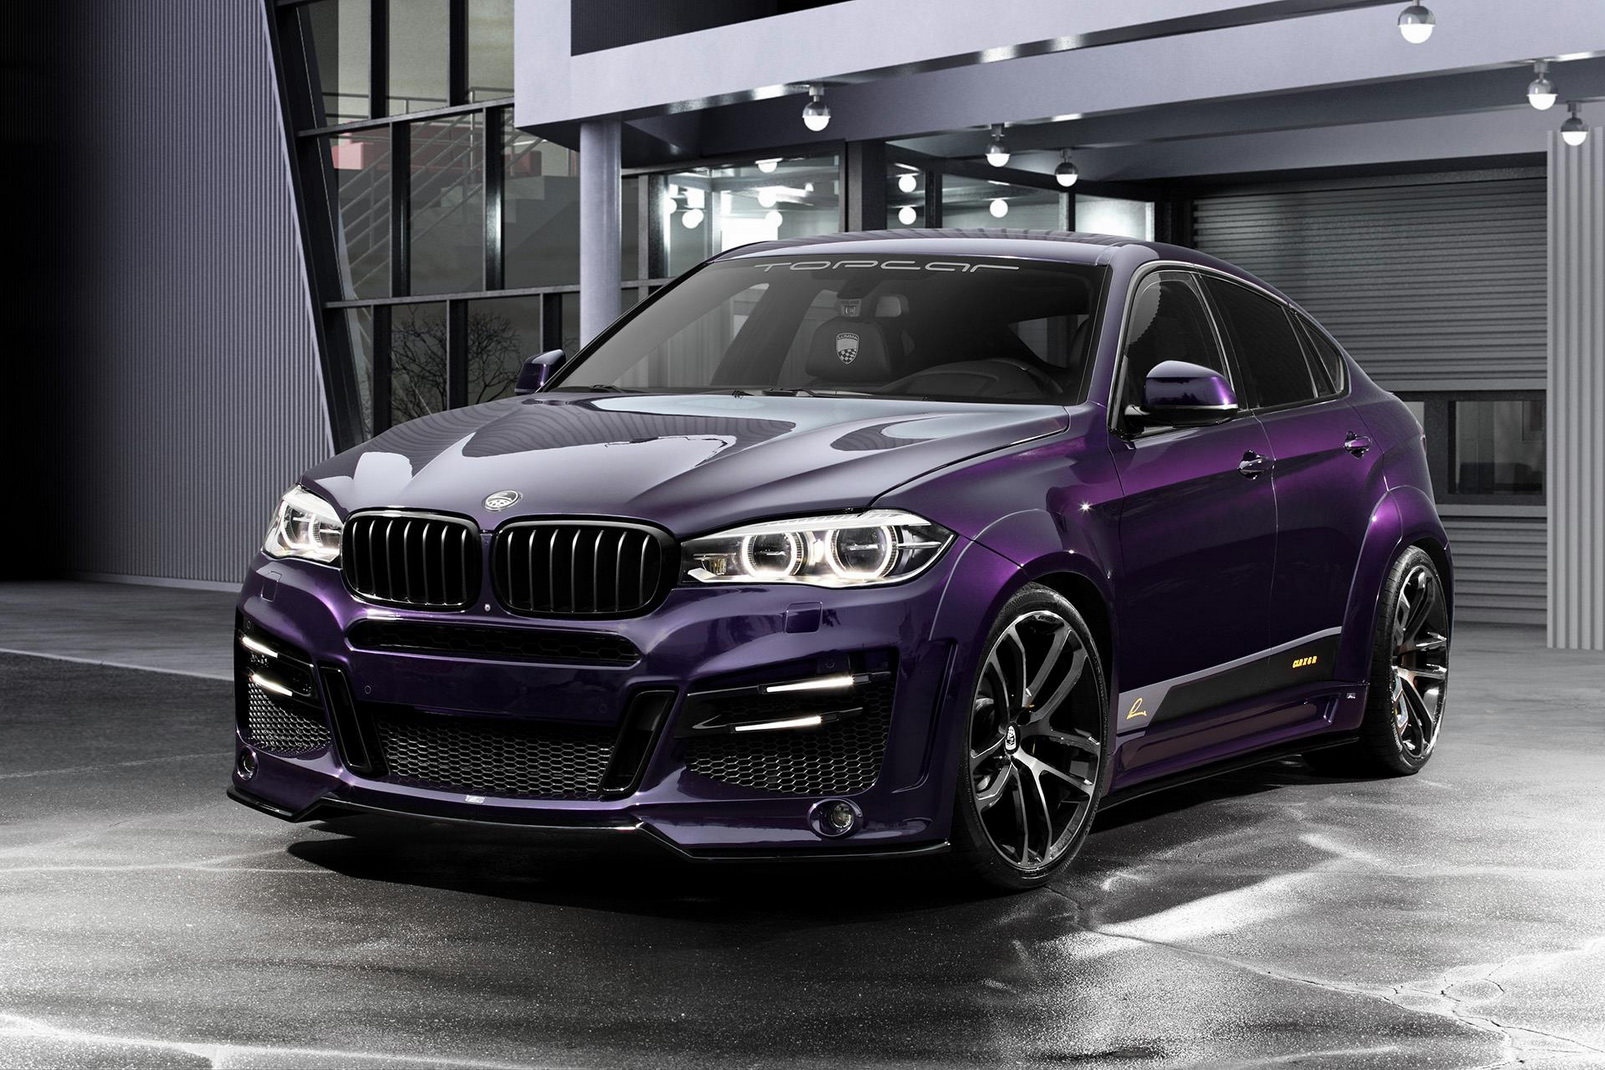 Plum Purple Lumma Design Bmw Clr X 6 R